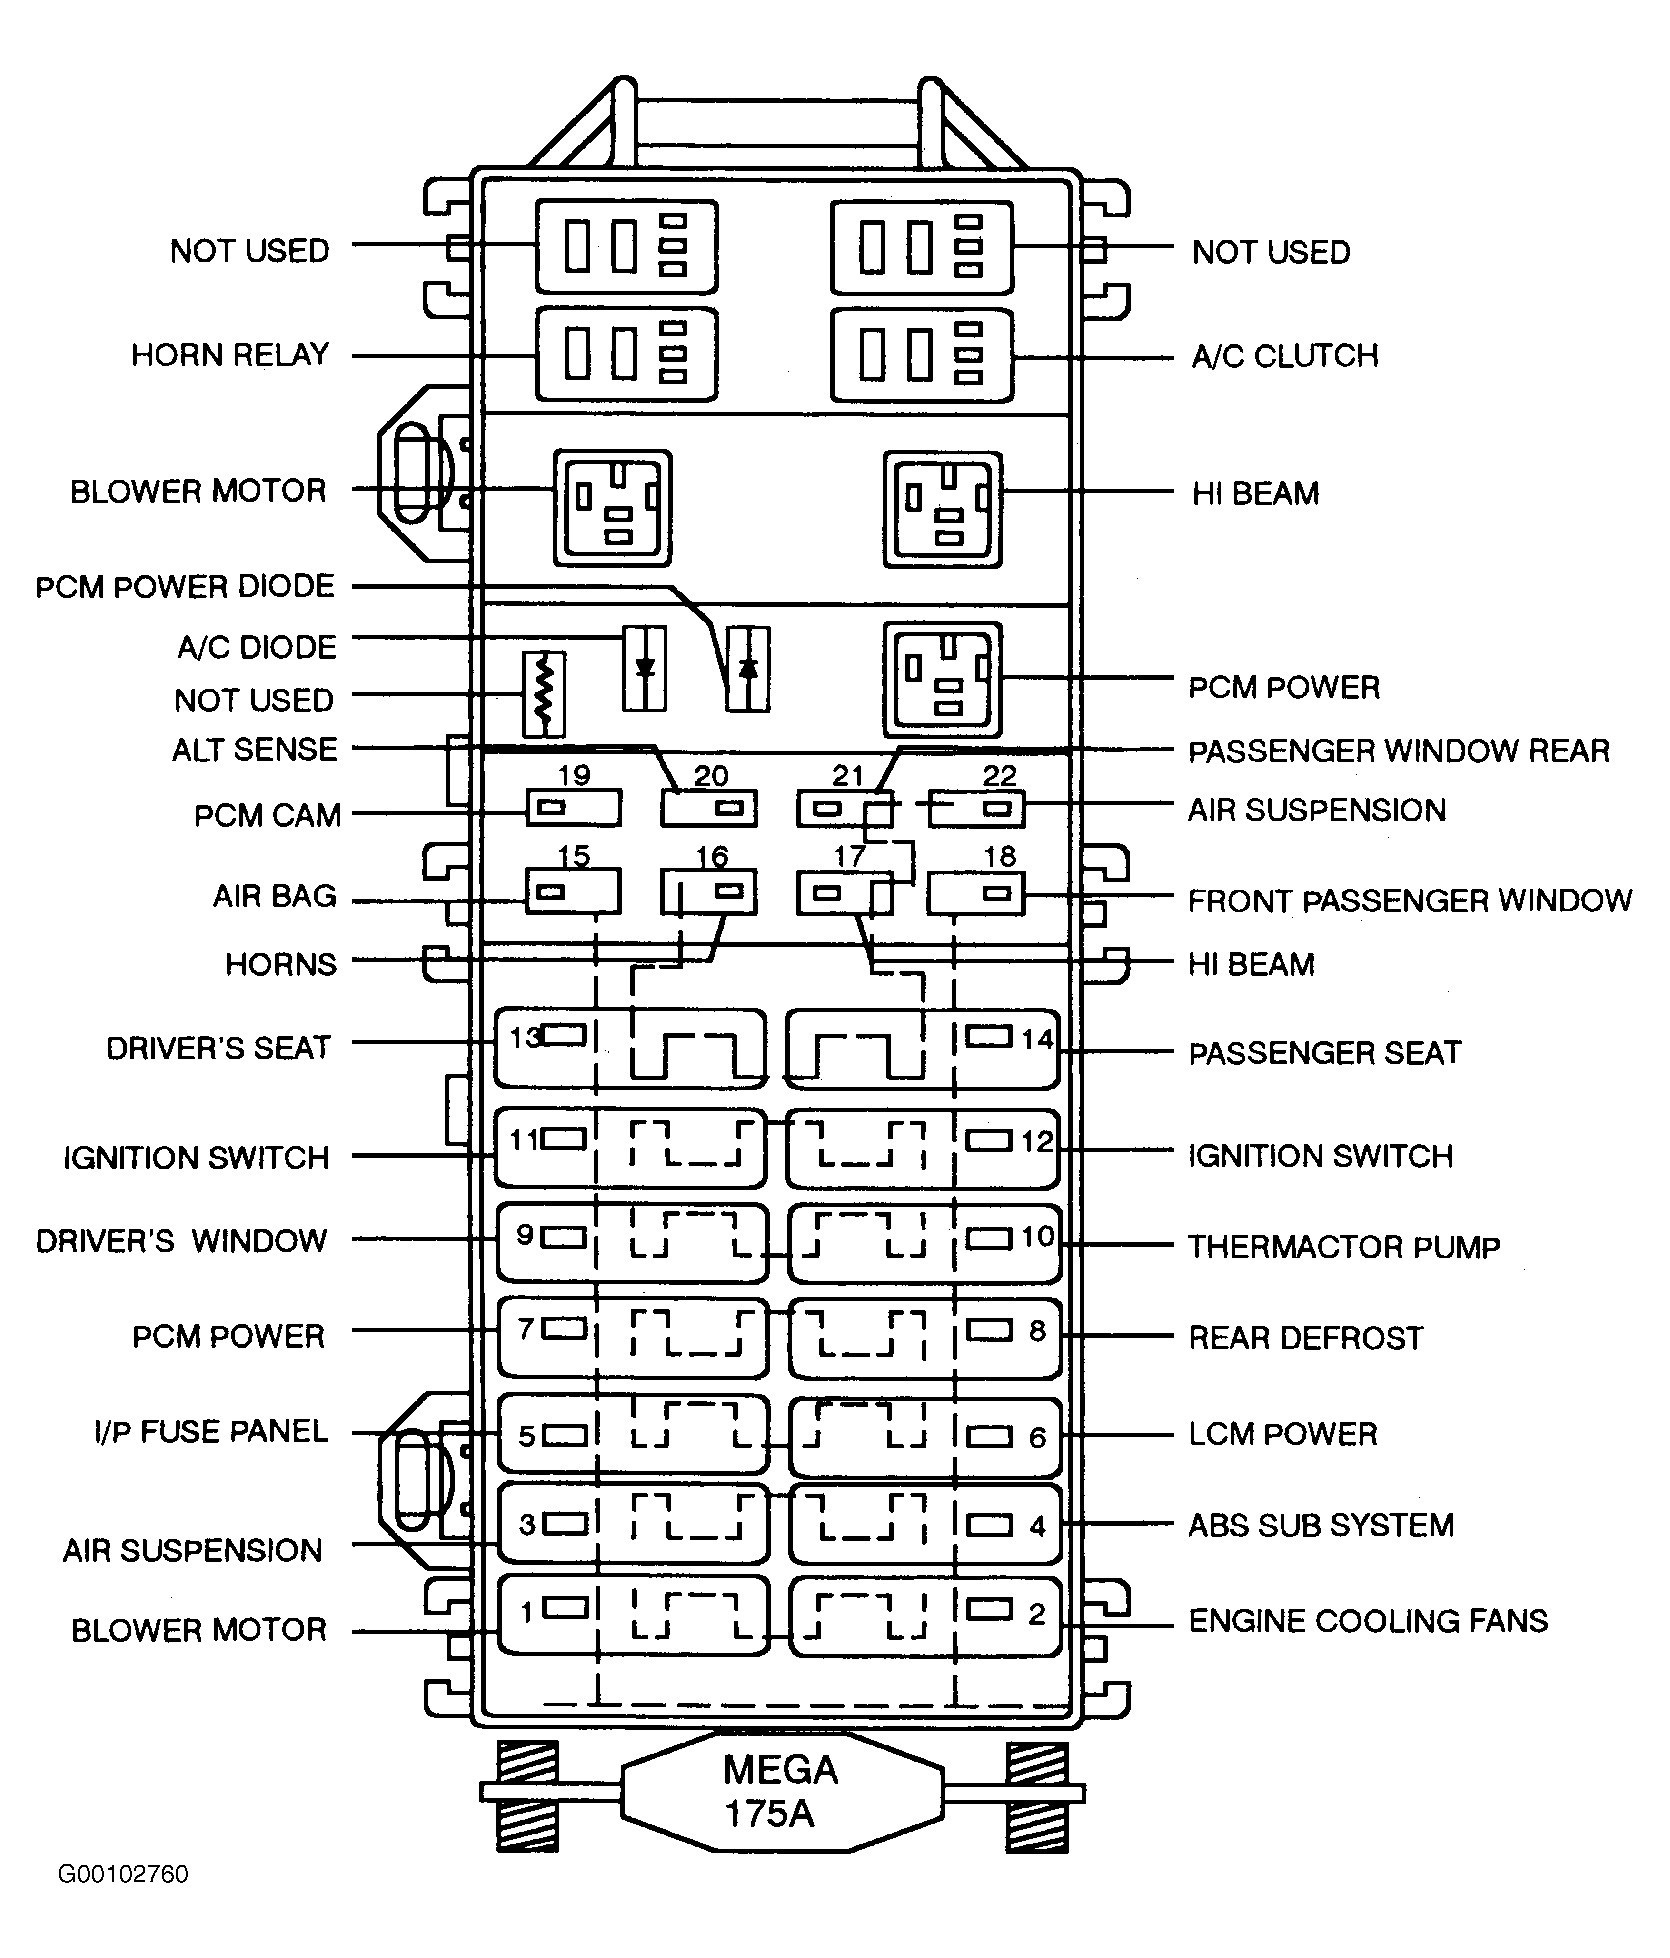 Altima Exhaust System Diagram On 1998 Buick Lesabre Wiring